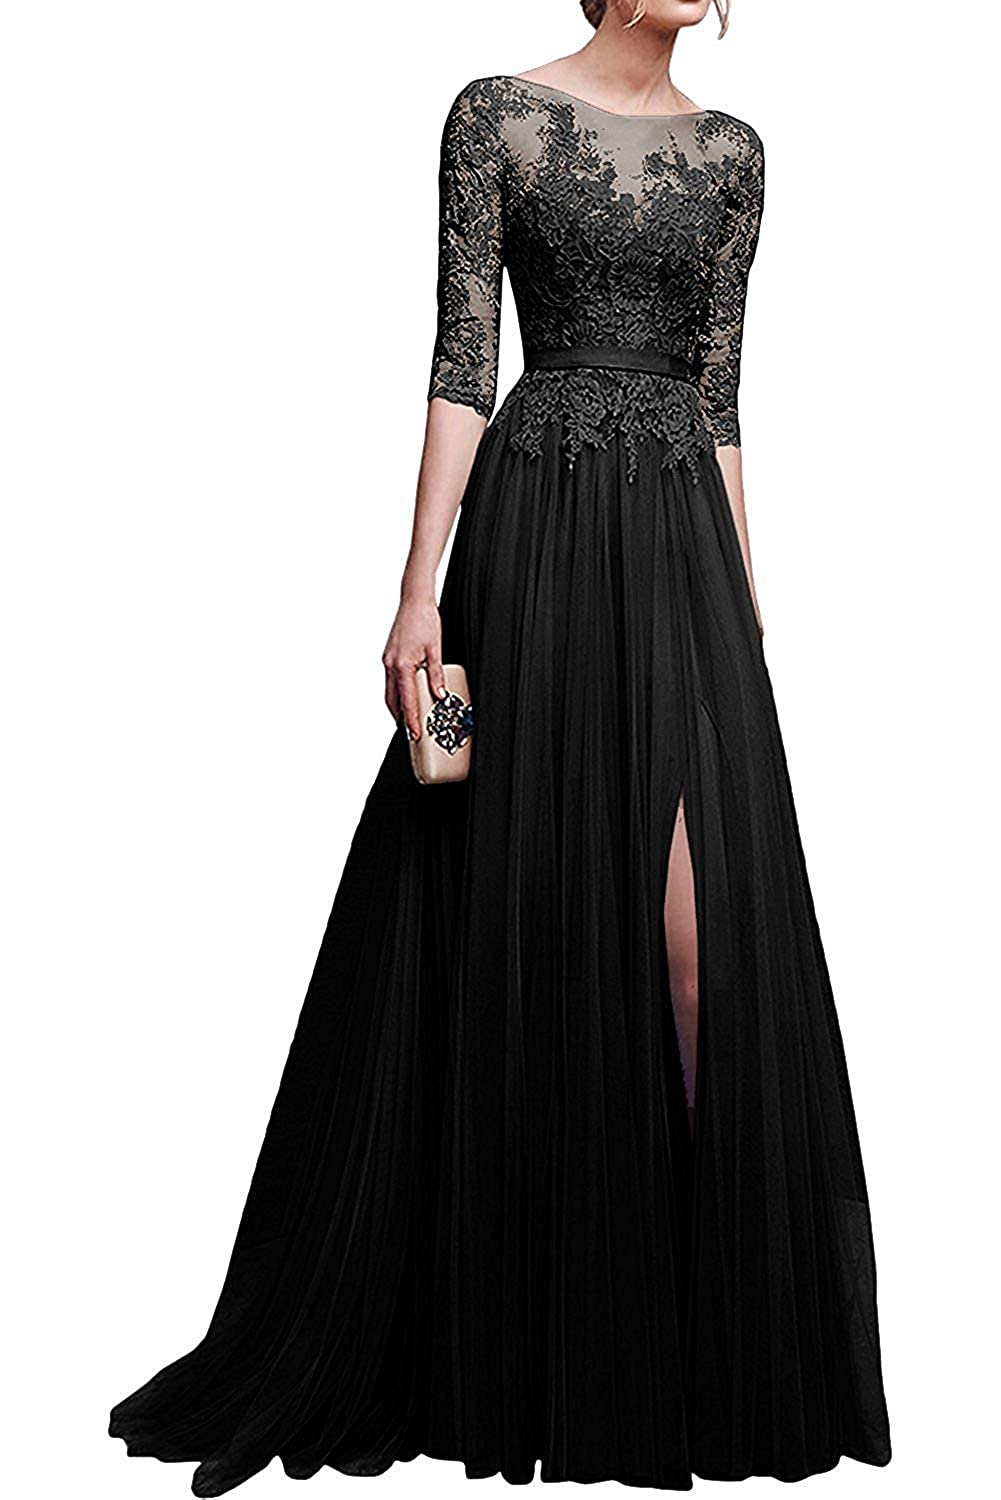 a325a97b3db Amazon.com  MisShow Applique Tulle 3 4 Sleeves Long Prom Dresses 2019 for  Women  Clothing